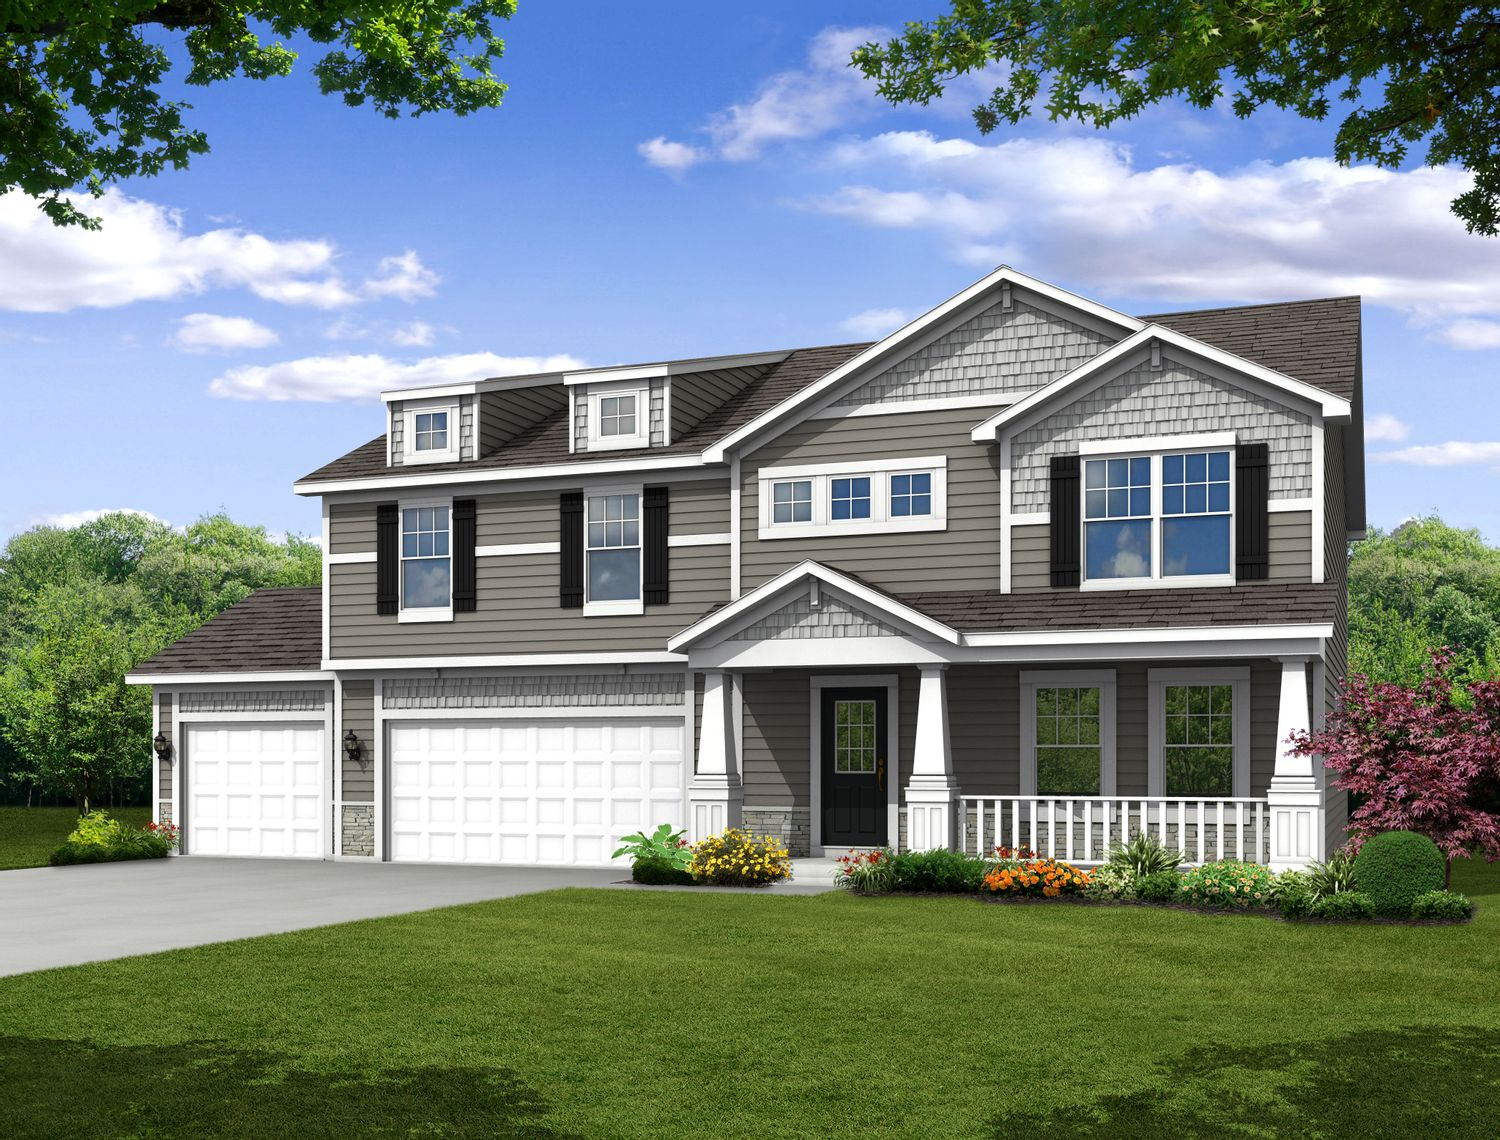 Olthof Homes Pentwater Brookfield 948284 Crown Point